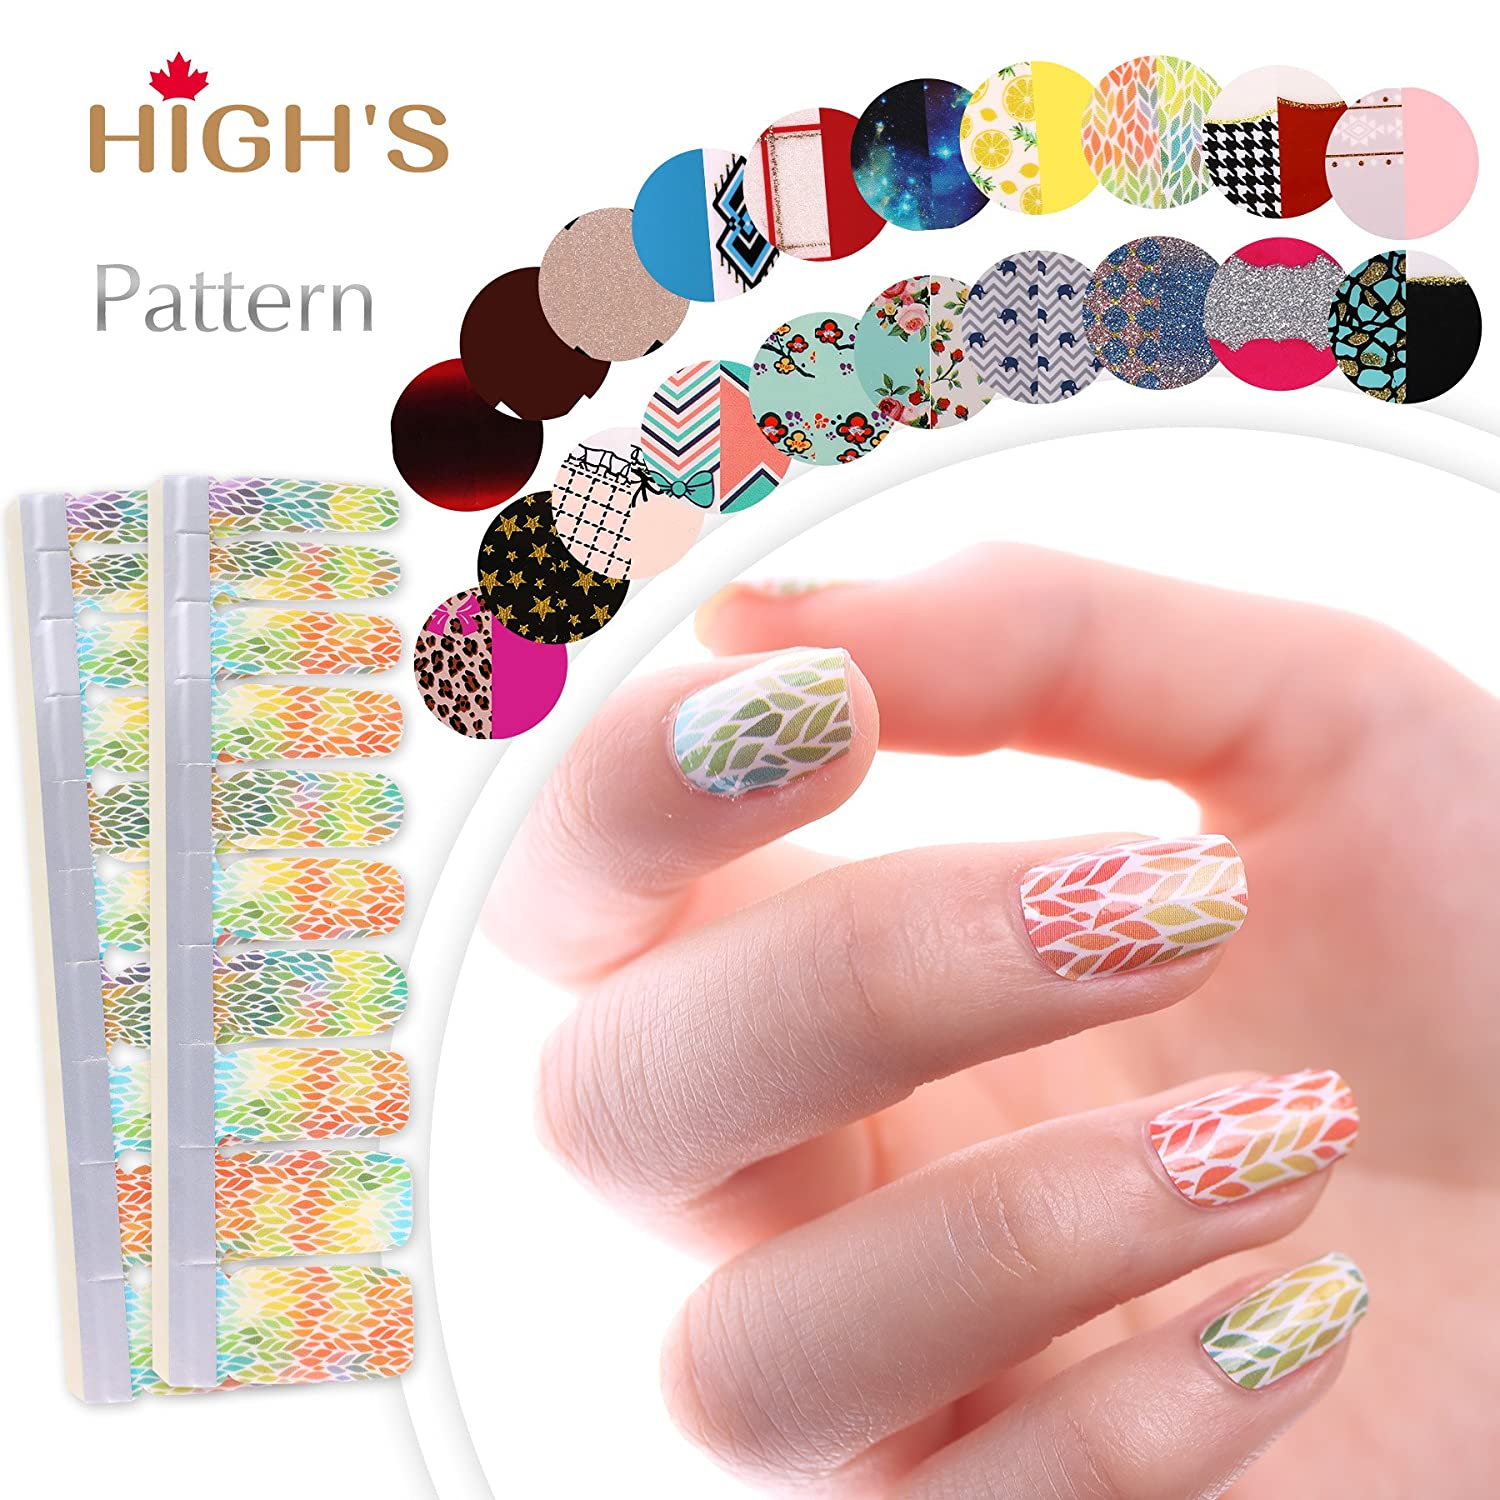 HIGH'S Pattern Series 2016 Summer Collection Manicure Nail Polish Strips Nail Wraps, F-fantastic HIGH' S